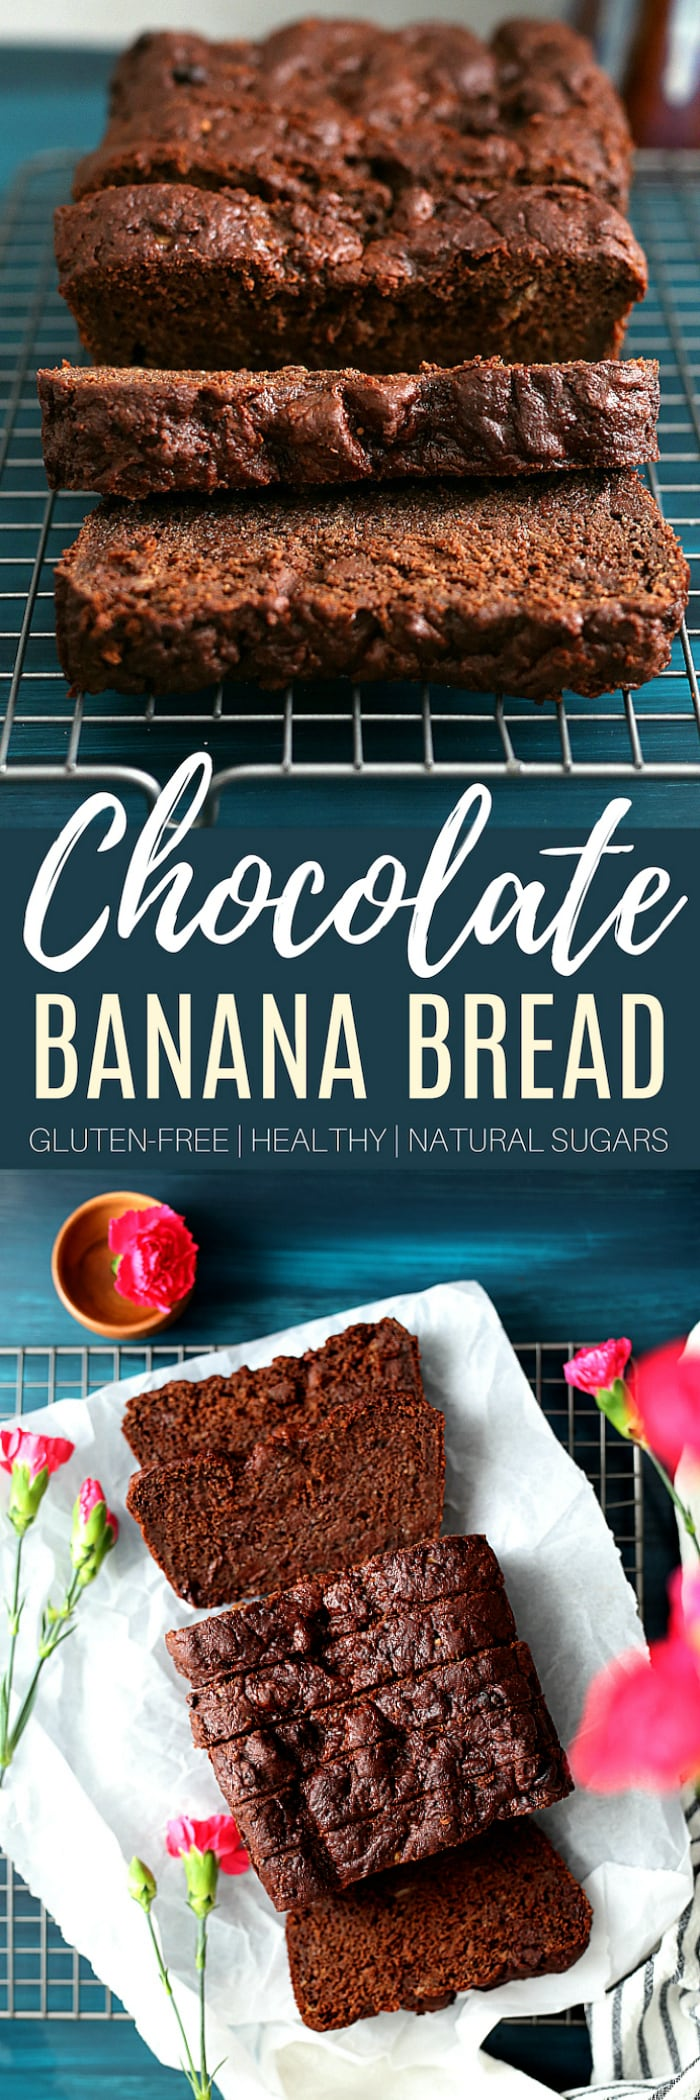 Gluten free chocolate banana bread - One of the richest gluten free chocolate banana bread recipes, especially for being on the healthy side! A favorite chocolate bread loaf easily made with cocoa powder, chocolate chips, ripe bananas, gluten-free flours, and refined sugar free sweeteners. #healthy #glutenfree #quickbread #bread #quick #banana #chocolate #loaf | Recipe at delightfulmomfood.com